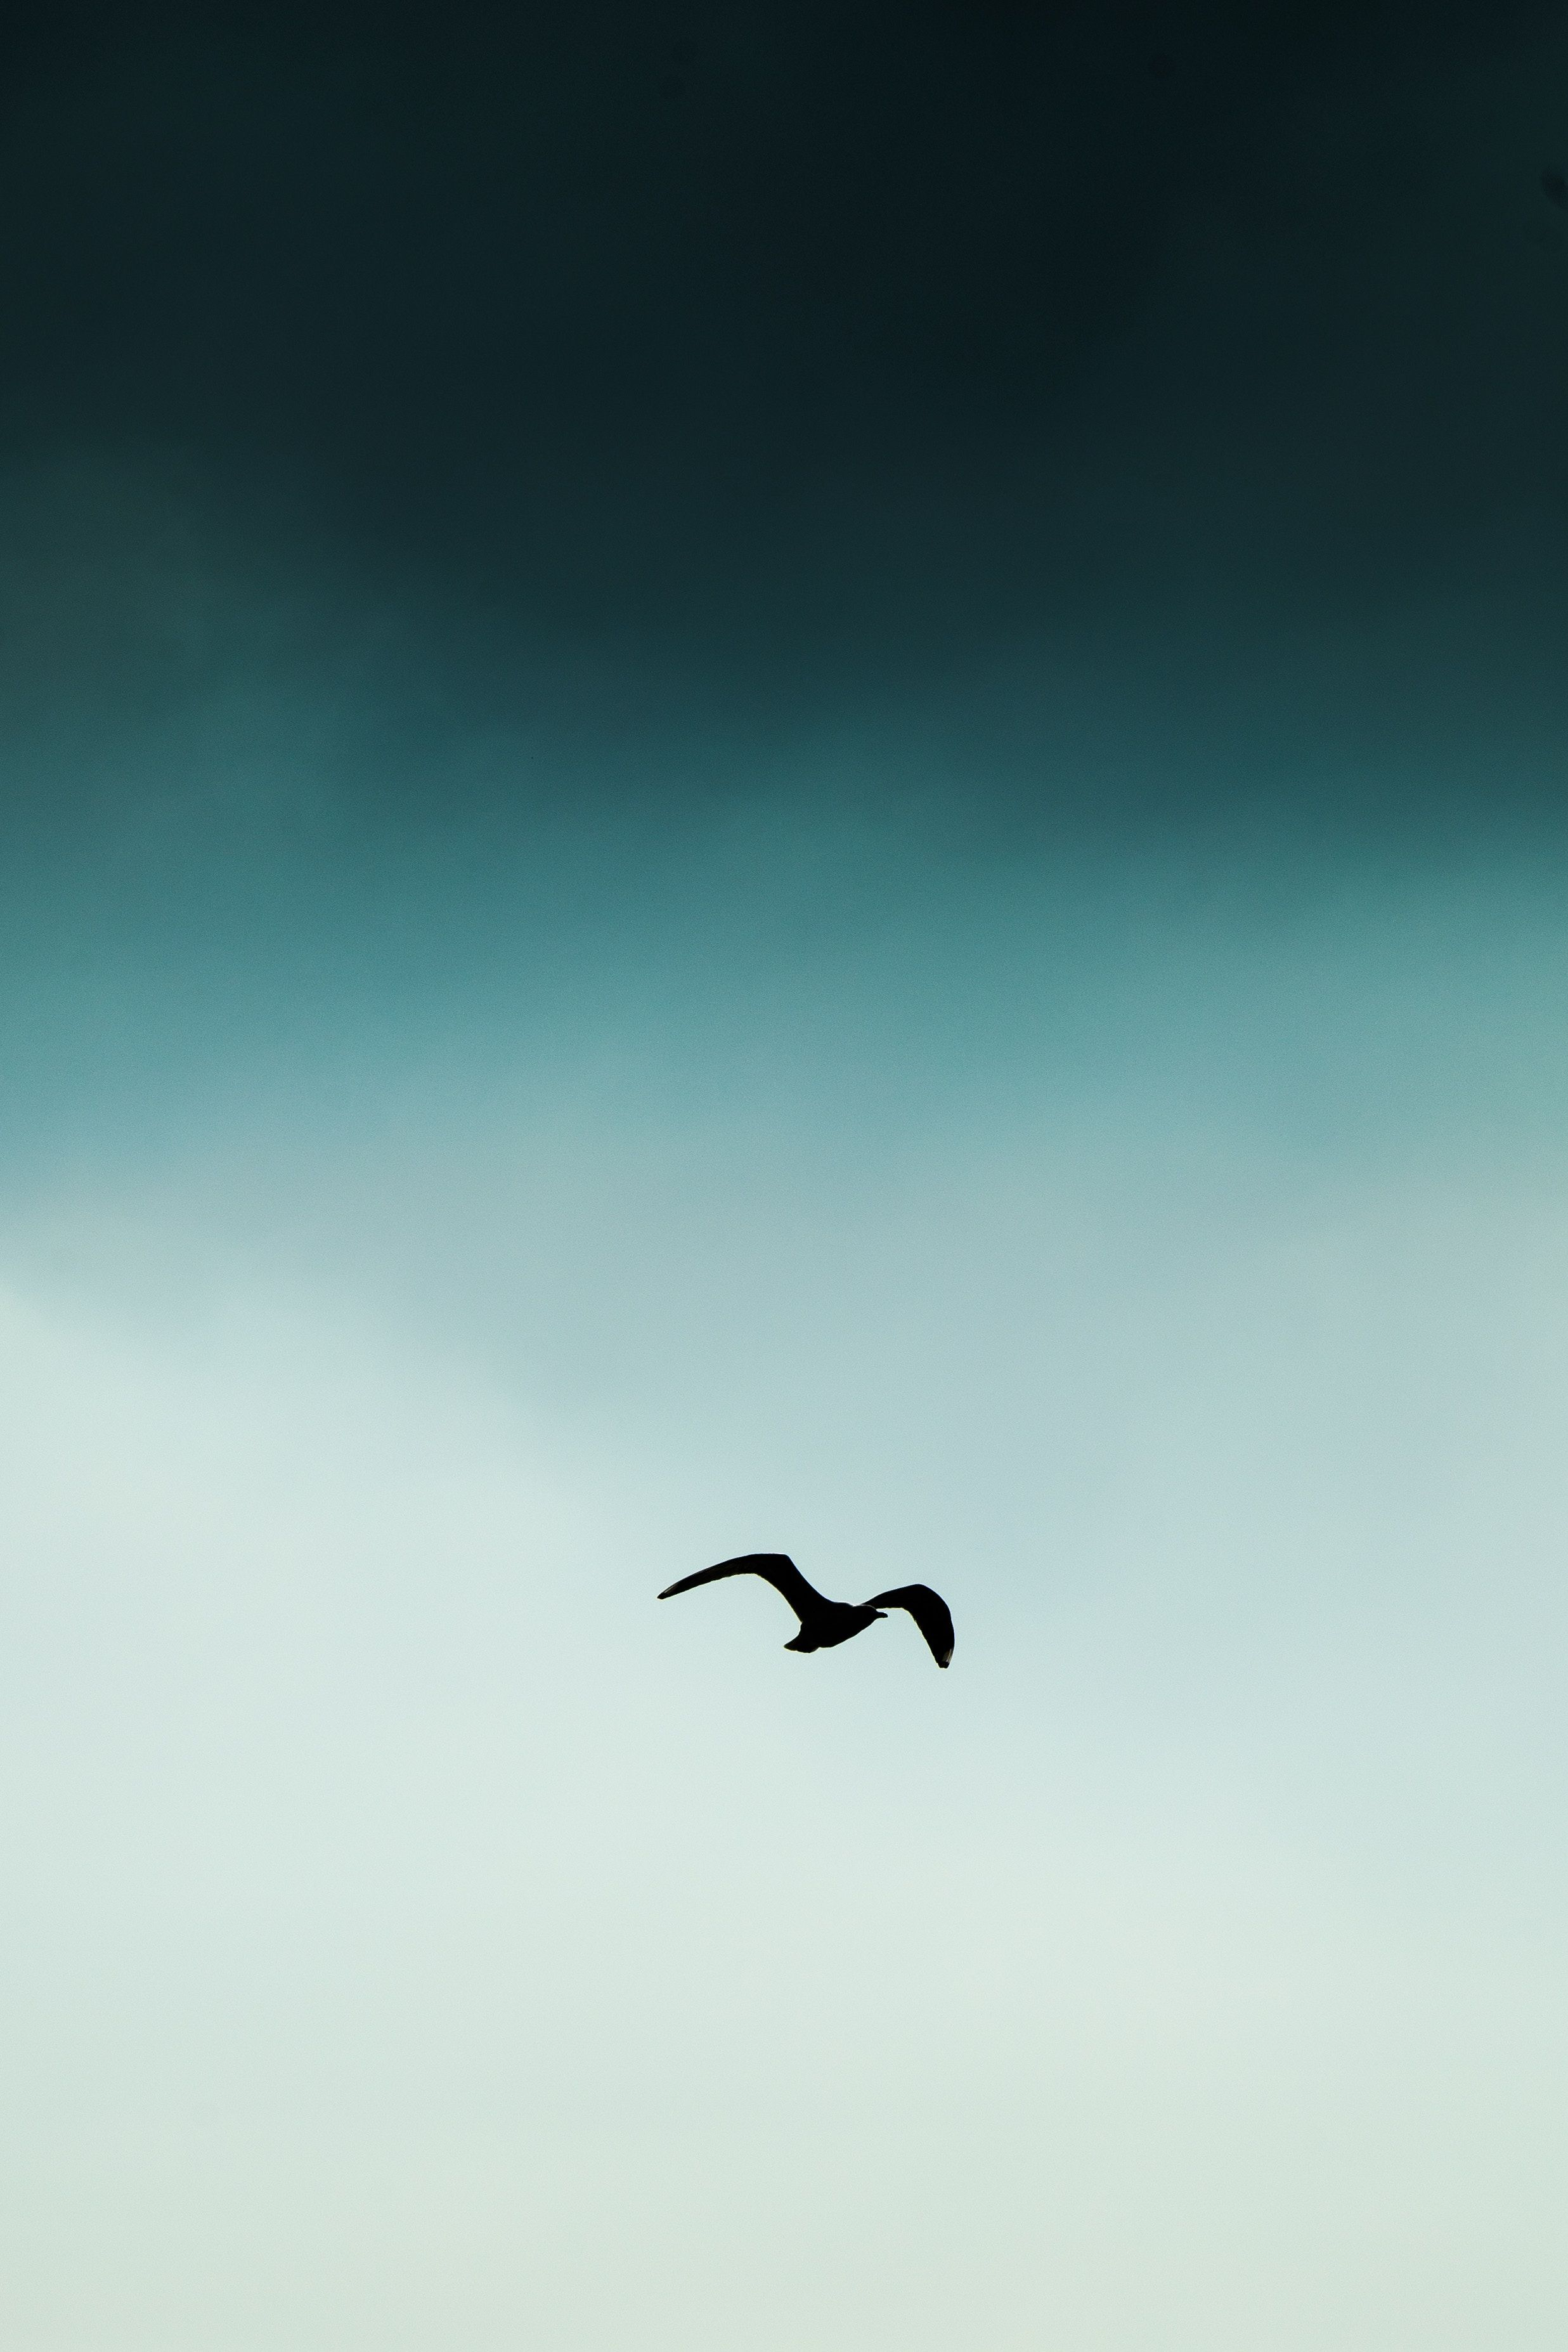 What Is Temporary And What Is Eternal Birds Flying Photography Birds In The Sky Sky Photography